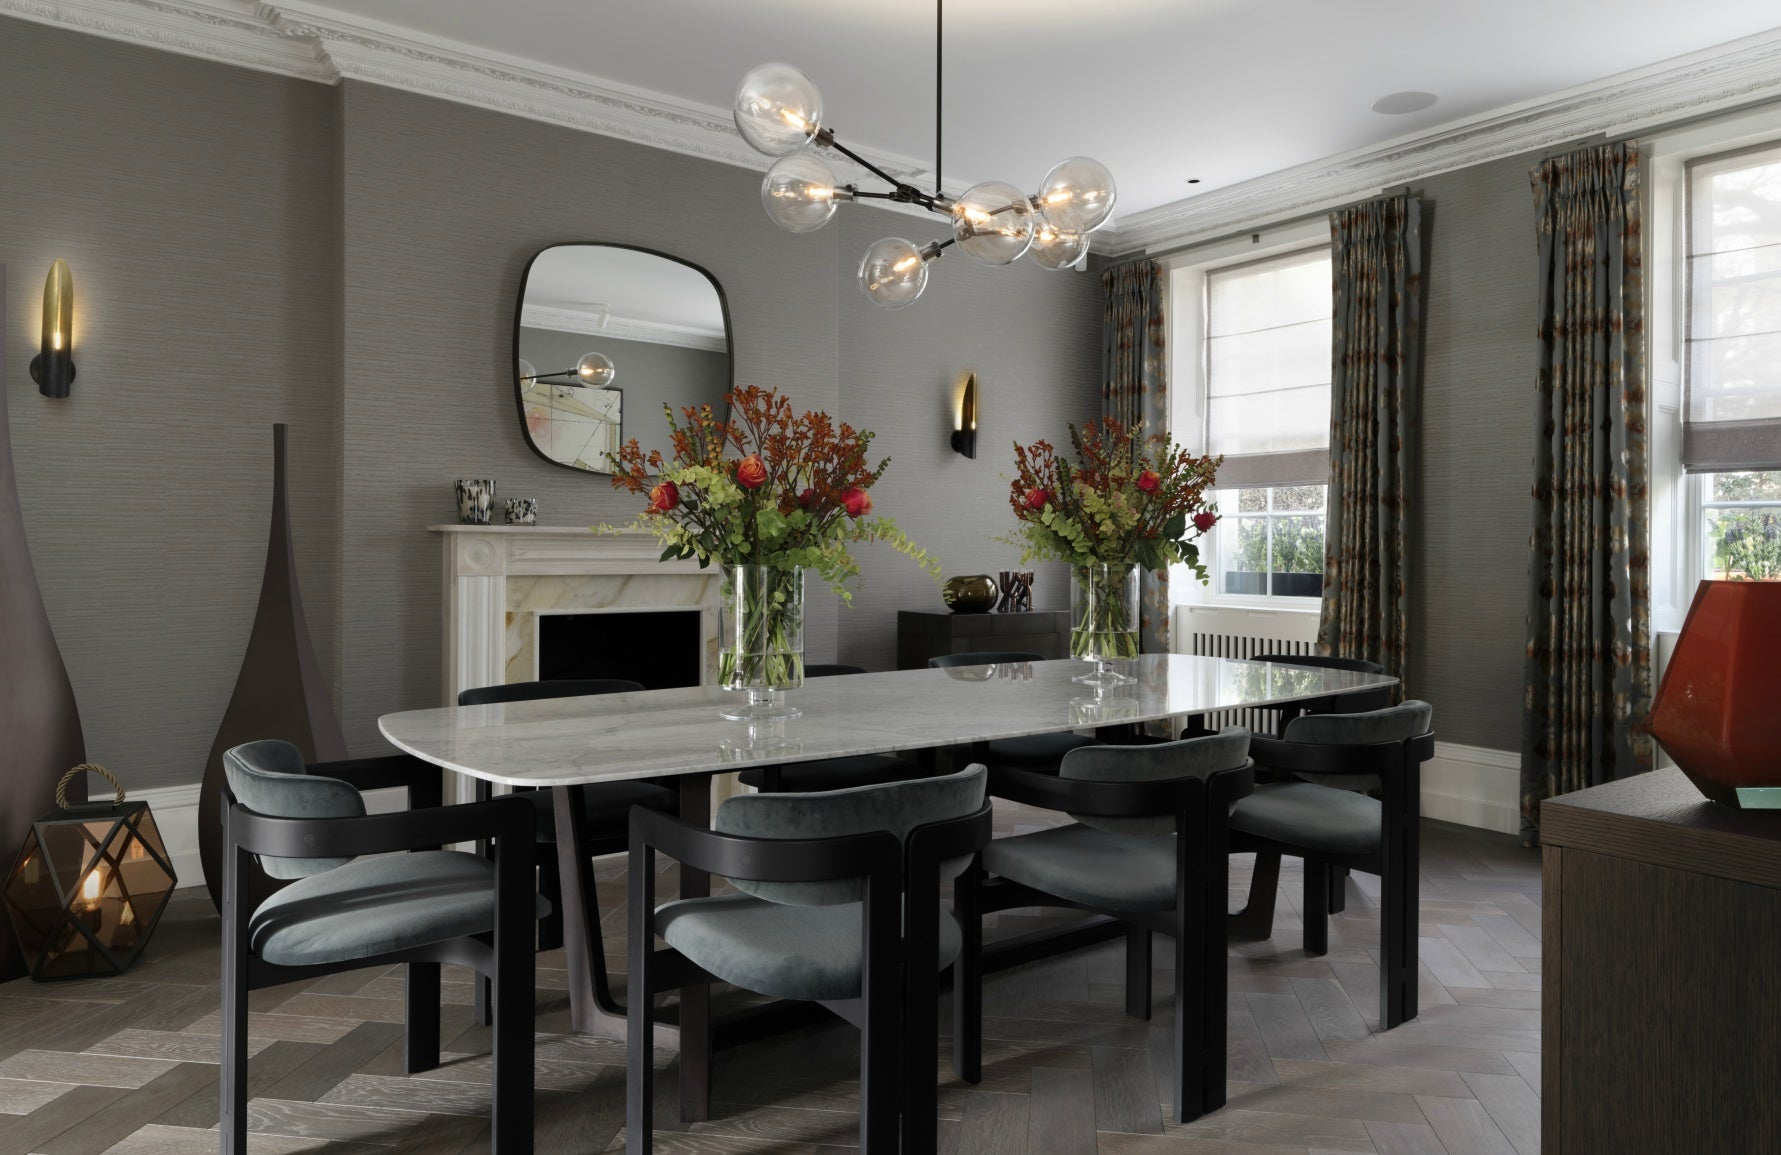 Luxury Dining Room Styles | Modern Dining Room | Staffan Tollgard | Read more in The Luxurist at LuxDeco.com